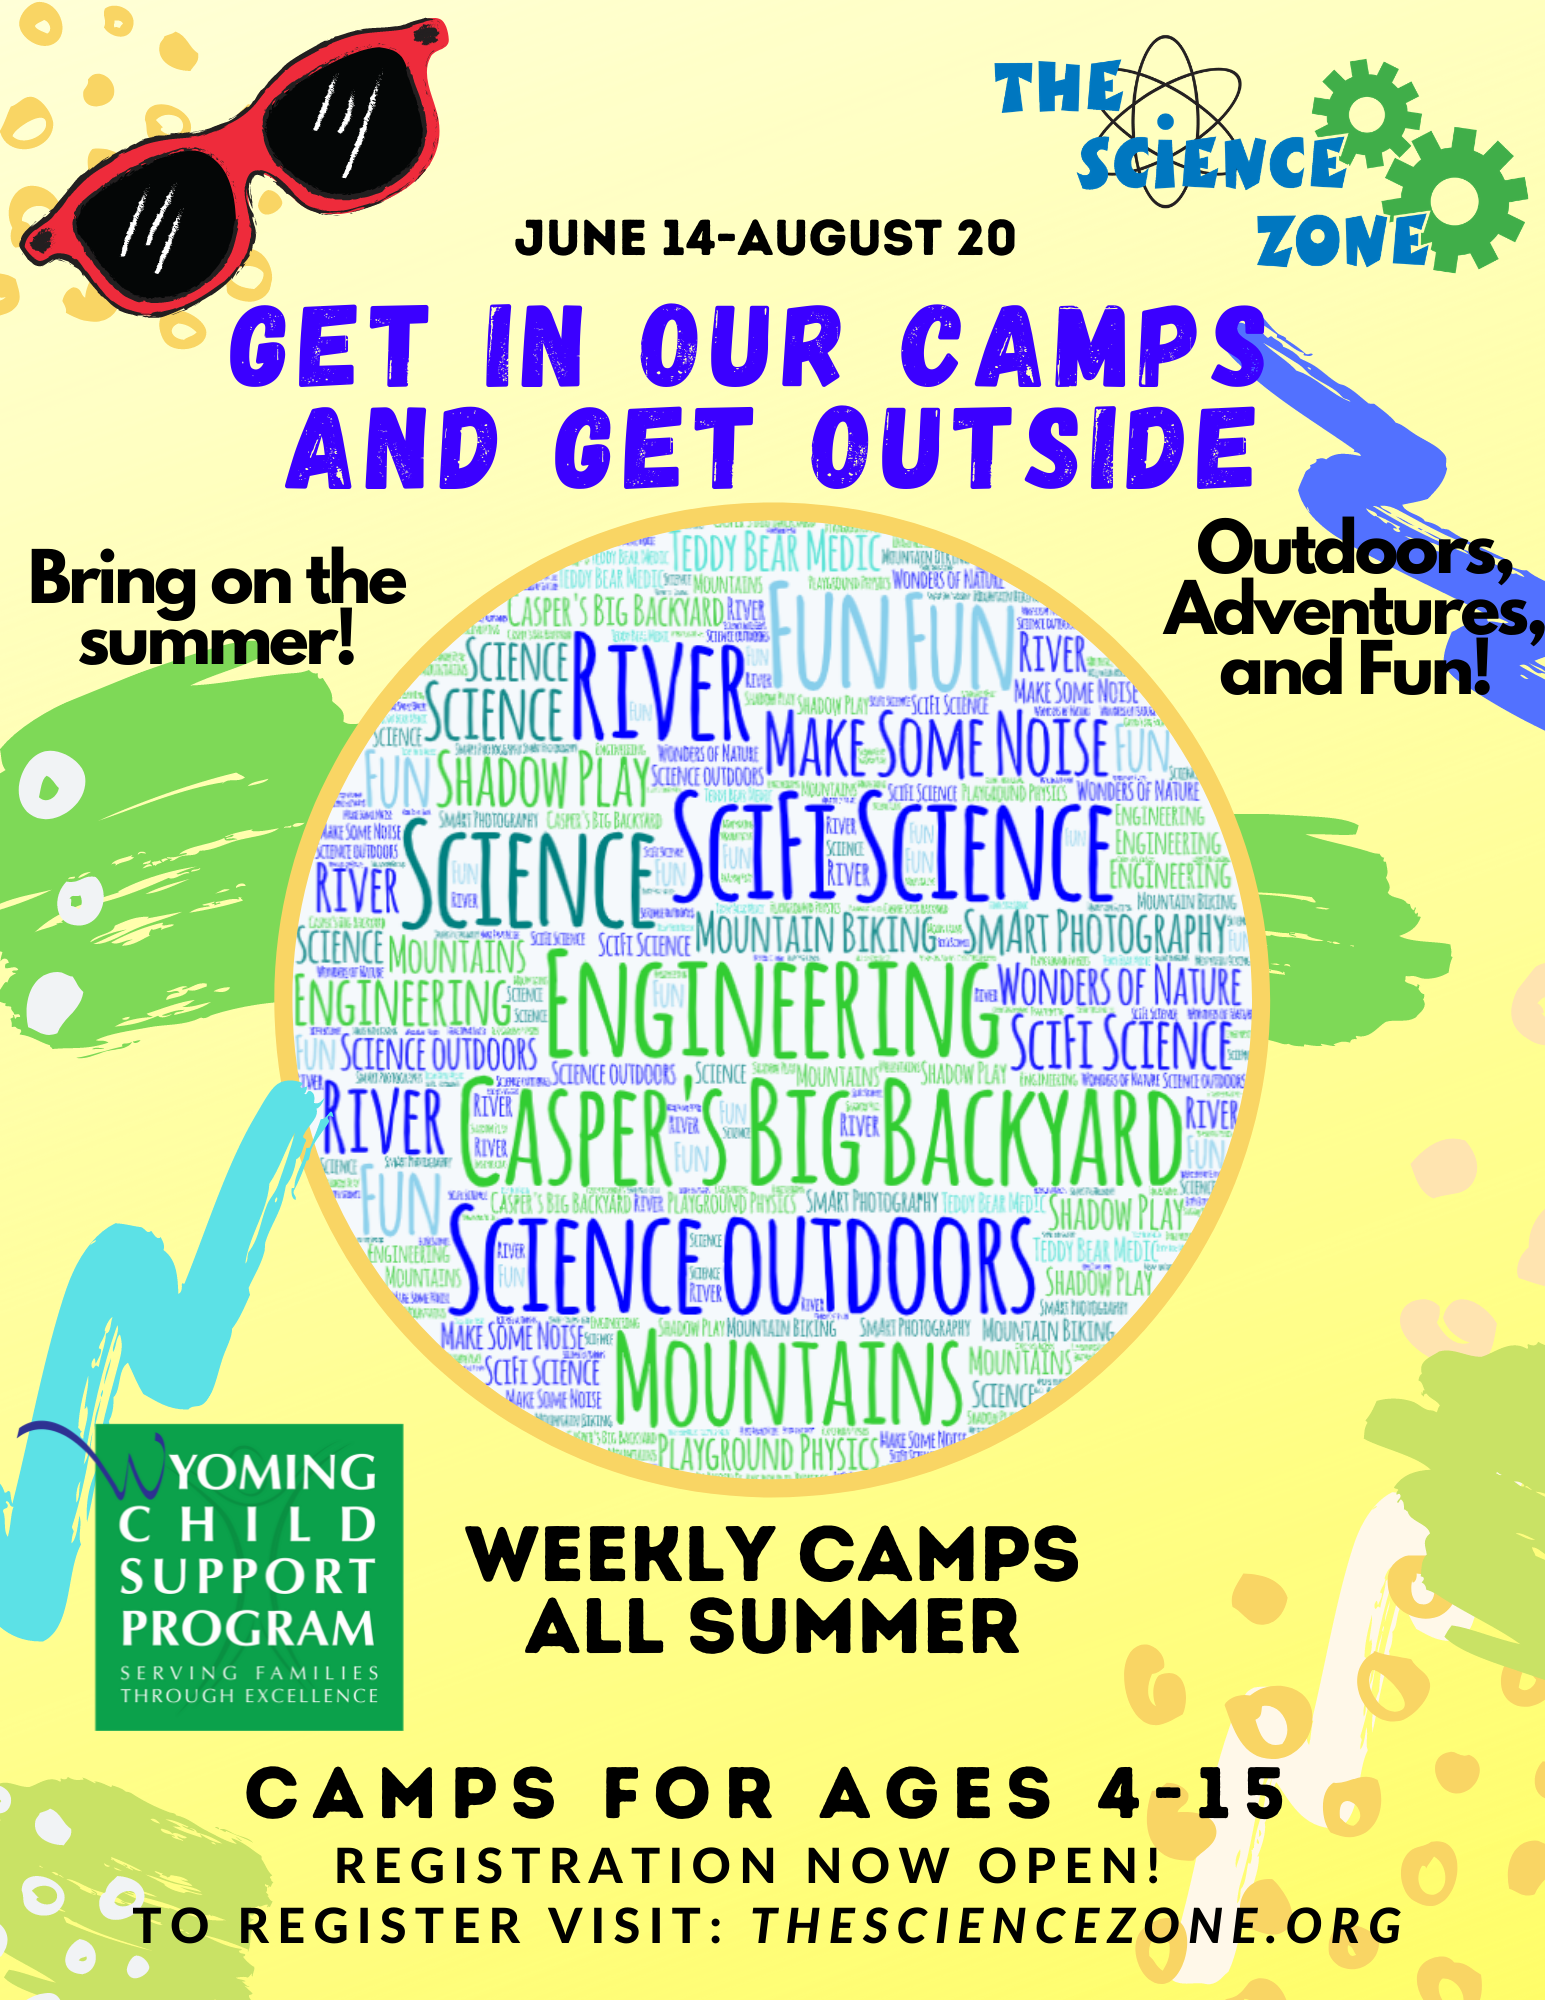 Science Zone Summer Camps Flyer